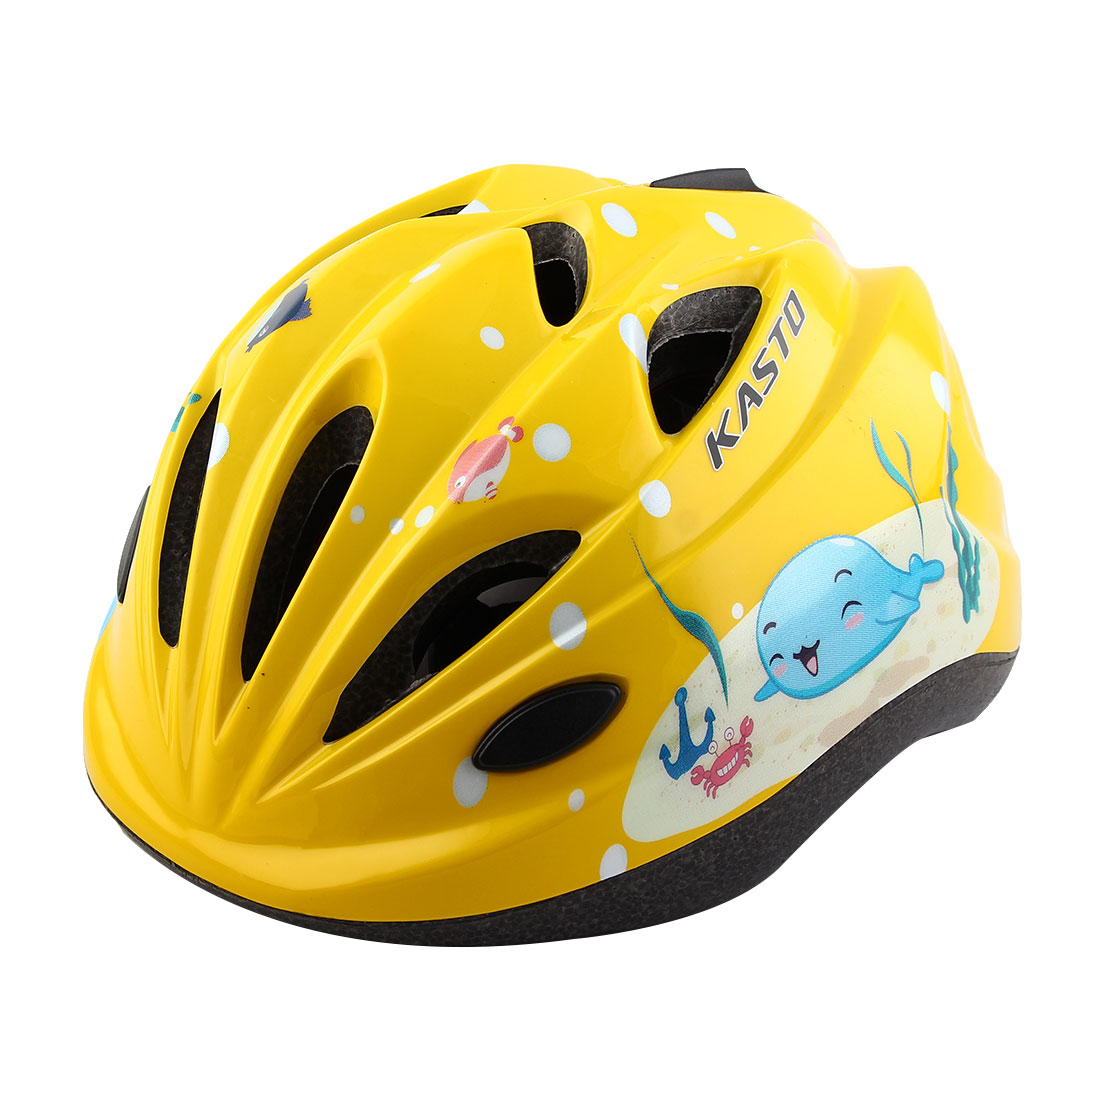 Boys Girls Adjustable Belt Removable Liner Road Cycling Mountain Bicycle Cap Safety Bike Helmet Yellow